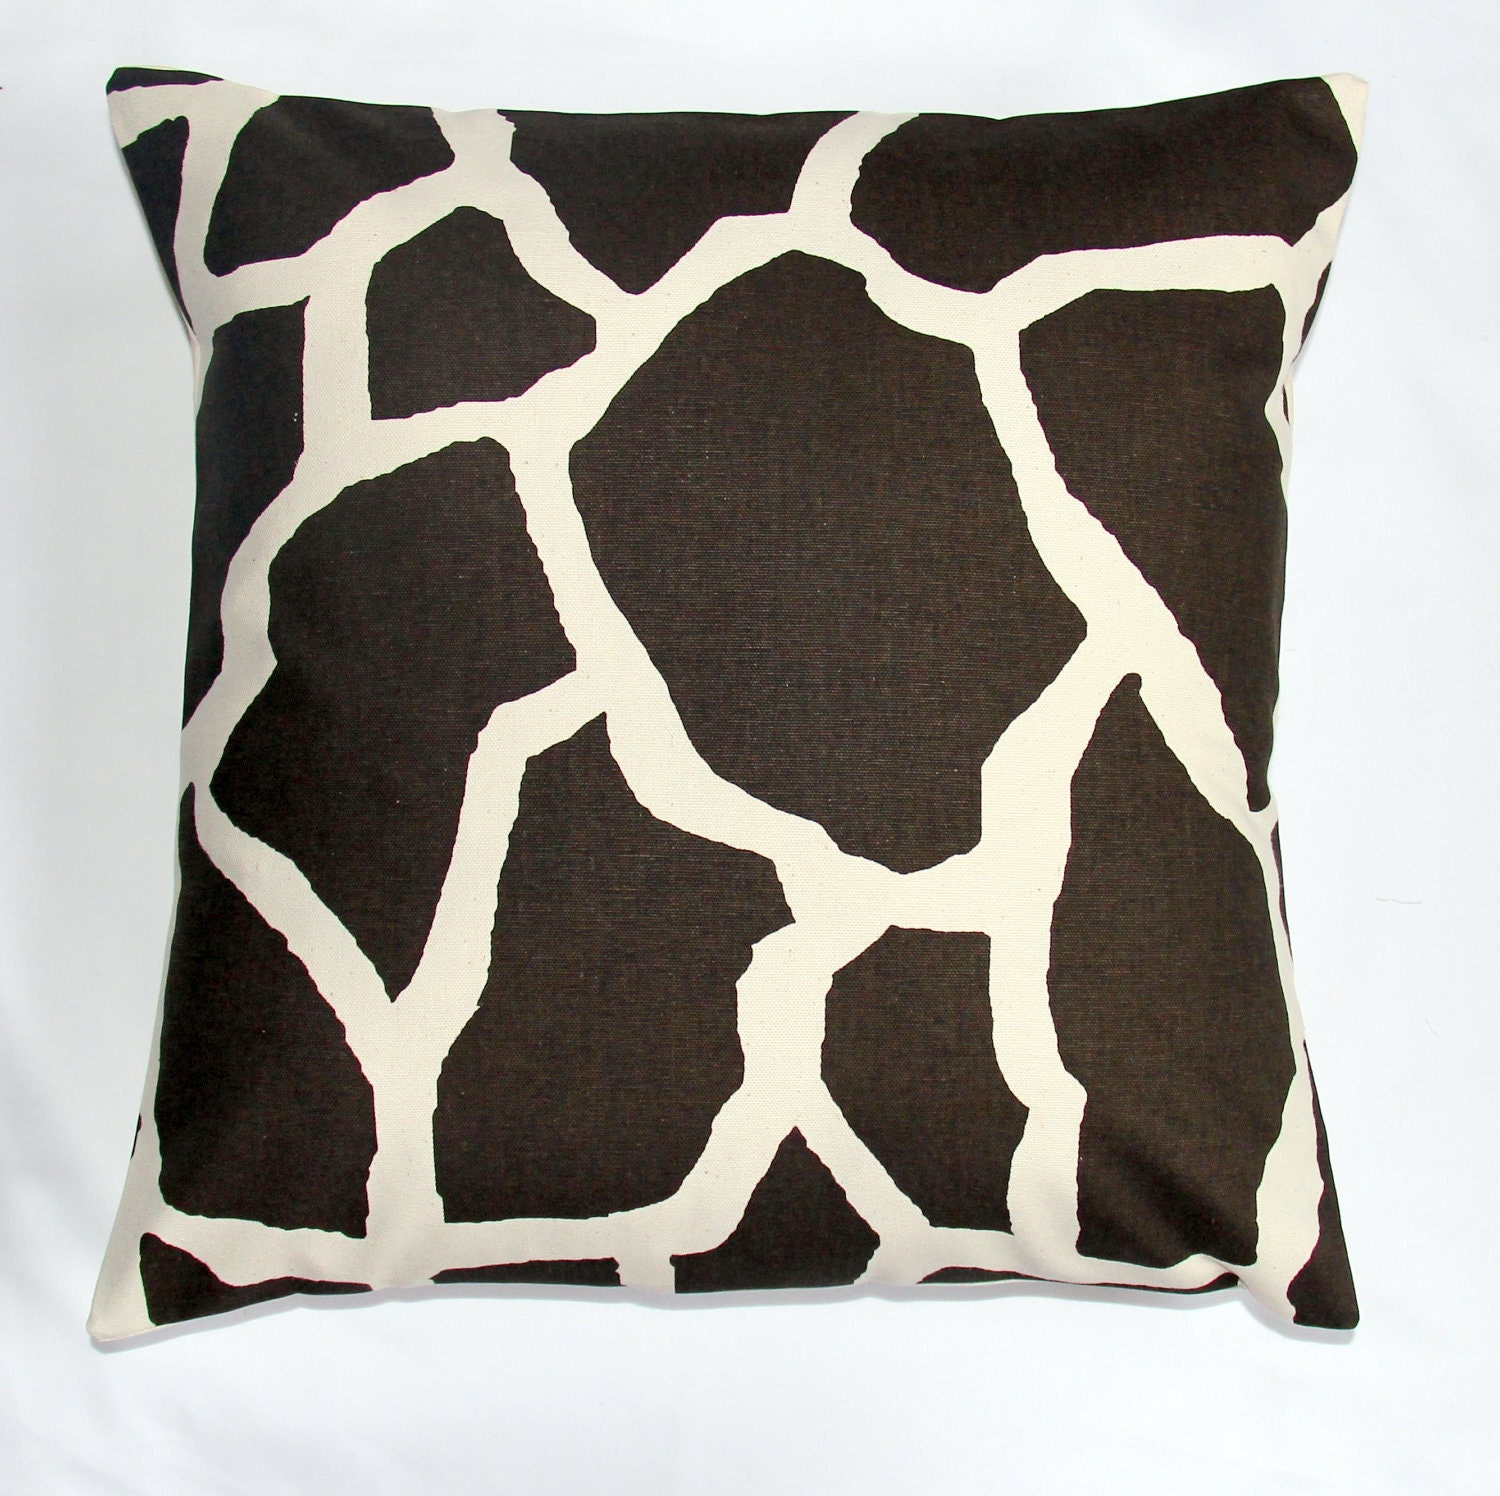 Giraffe Decorative Pillow : Pillow sofa pillow Giraffe Print cushion by ModernTouchDesigns